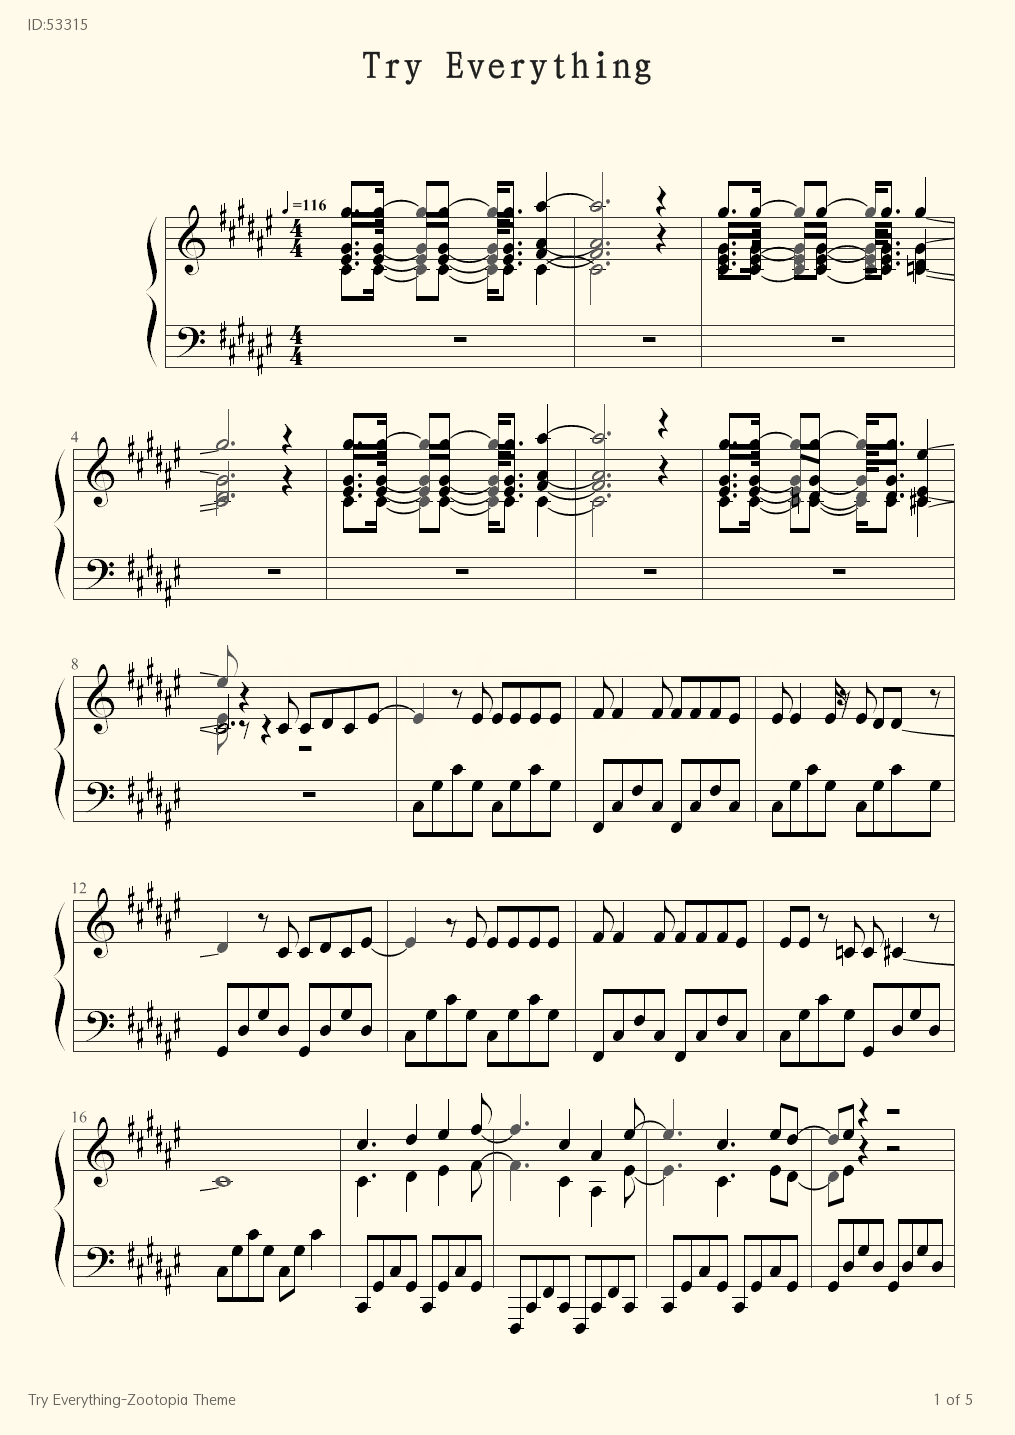 Try Everything Zootopia Theme - Shakira - first page